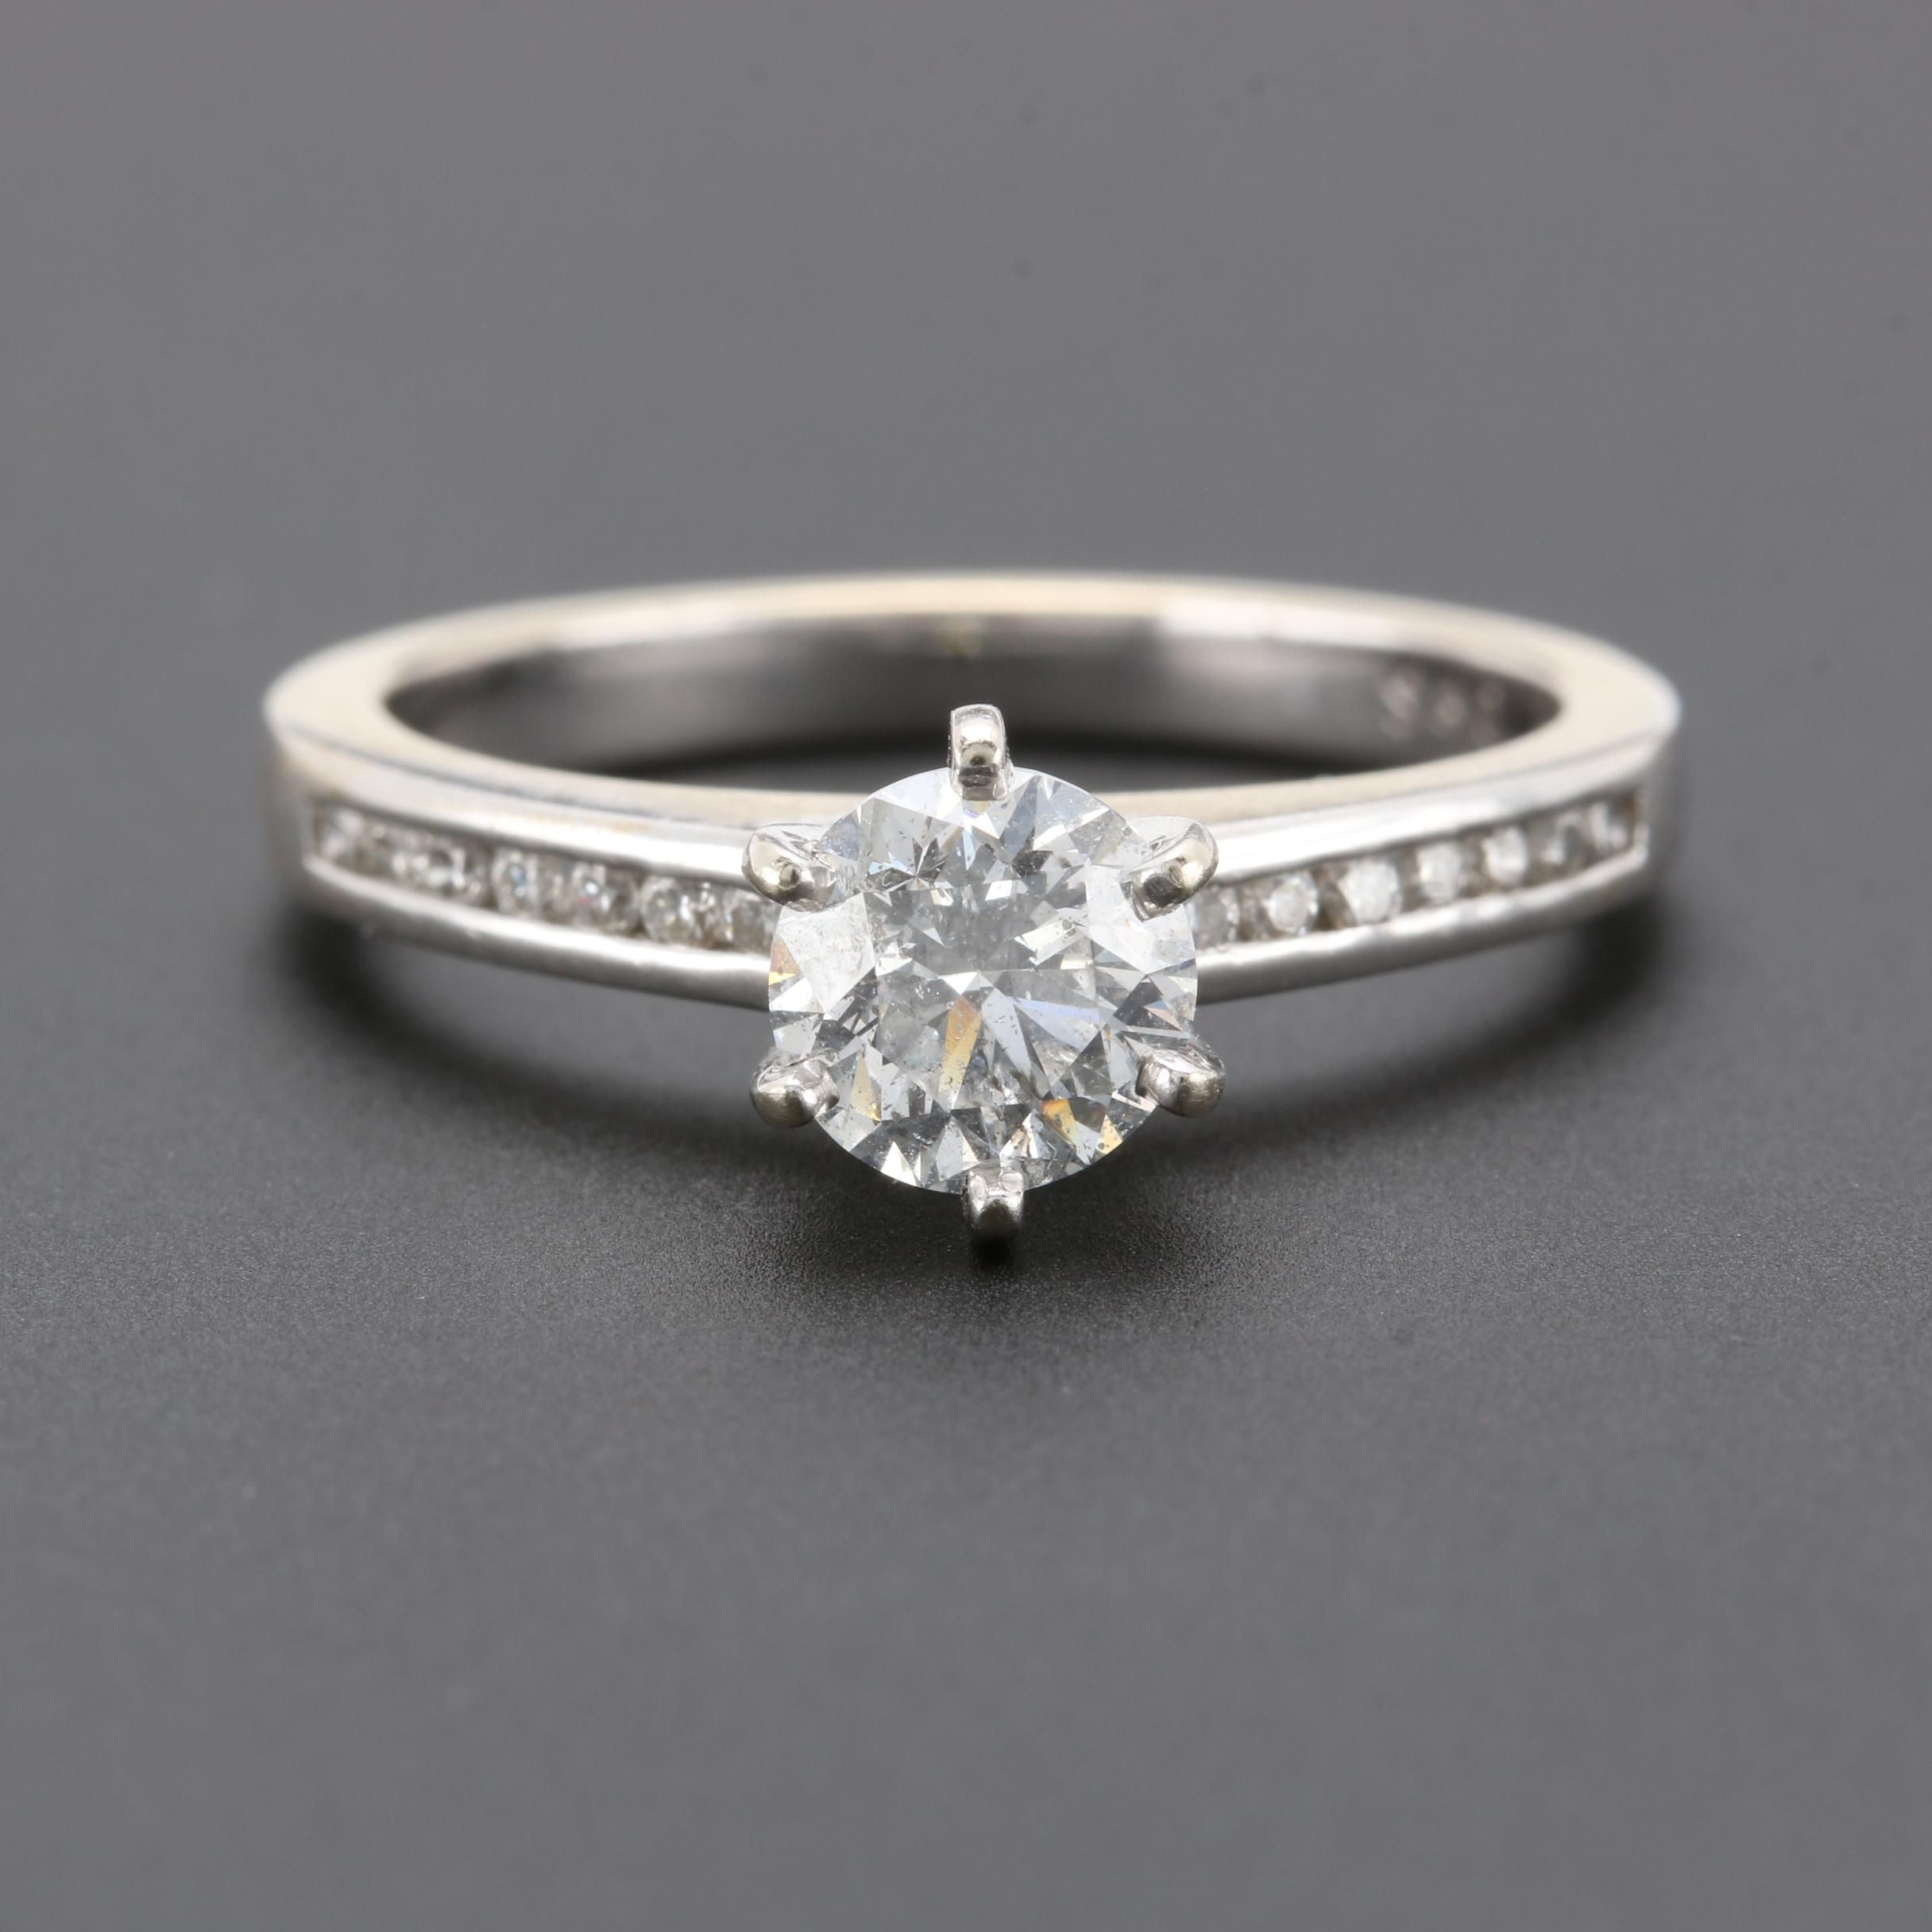 14K and 18K White Gold 1.23 CTW Diamond Ring